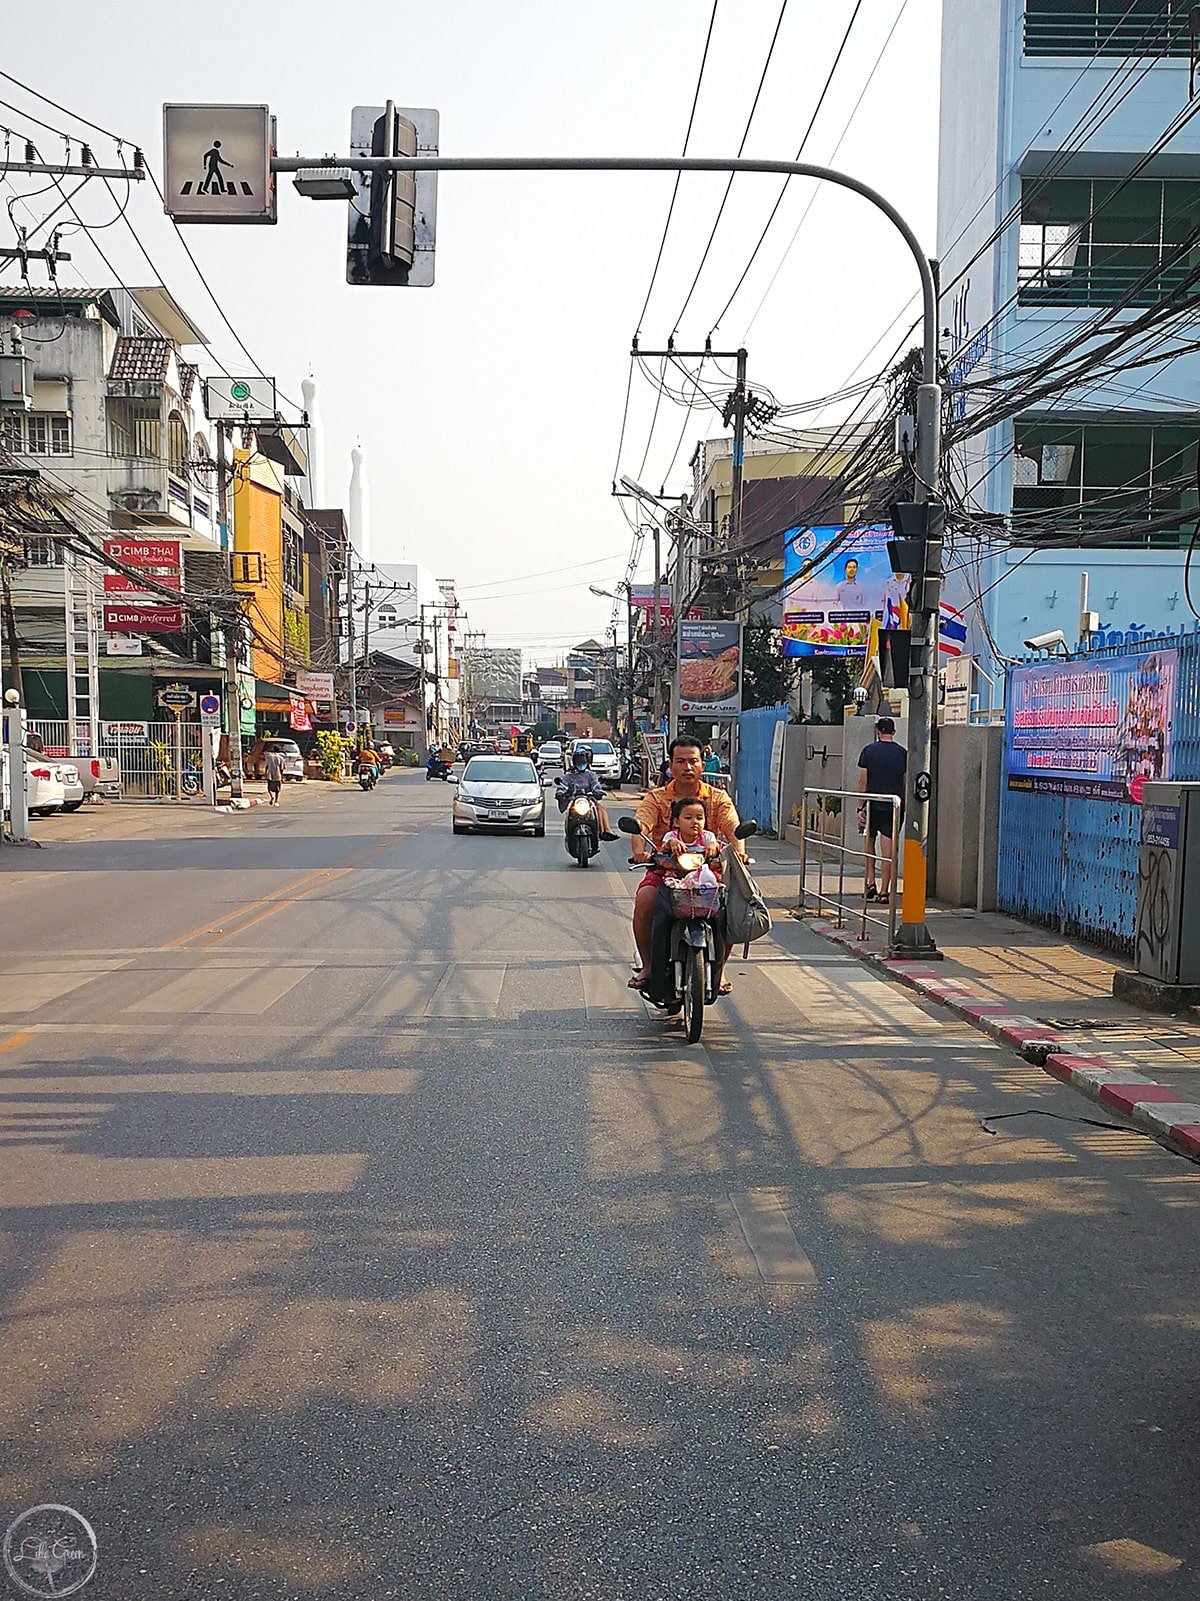 The Streets of Chiang Mai